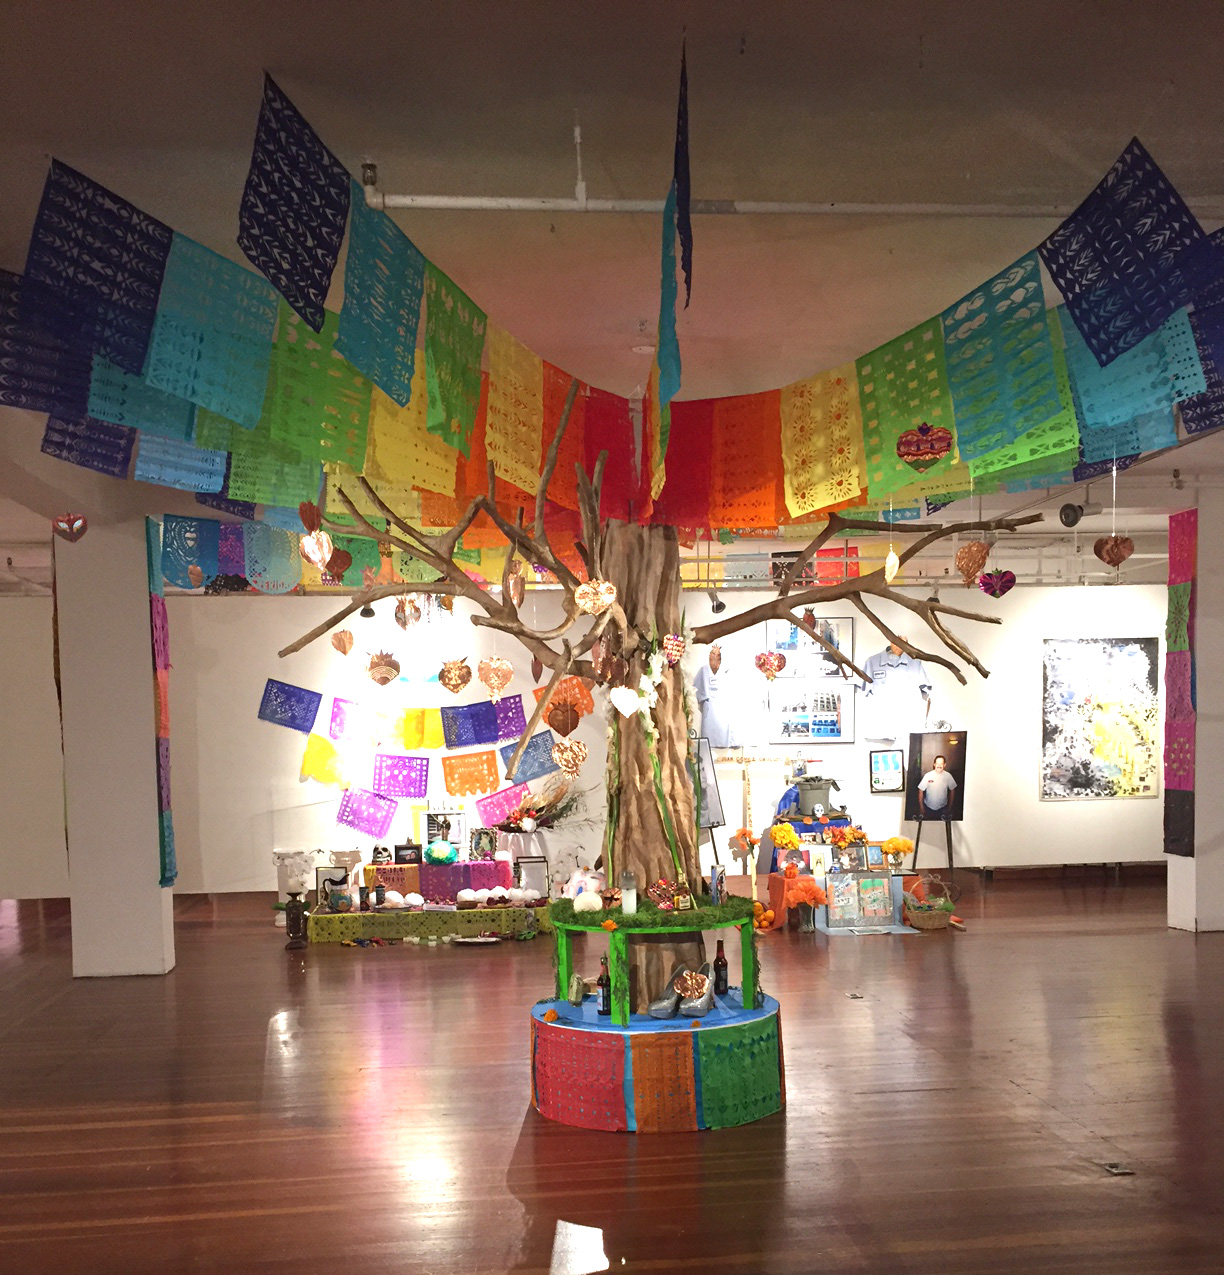 An altar for the victims of the Orlando Shooting is on display at the Mission Cultural Center for Latino Arts. The altar was created in house.